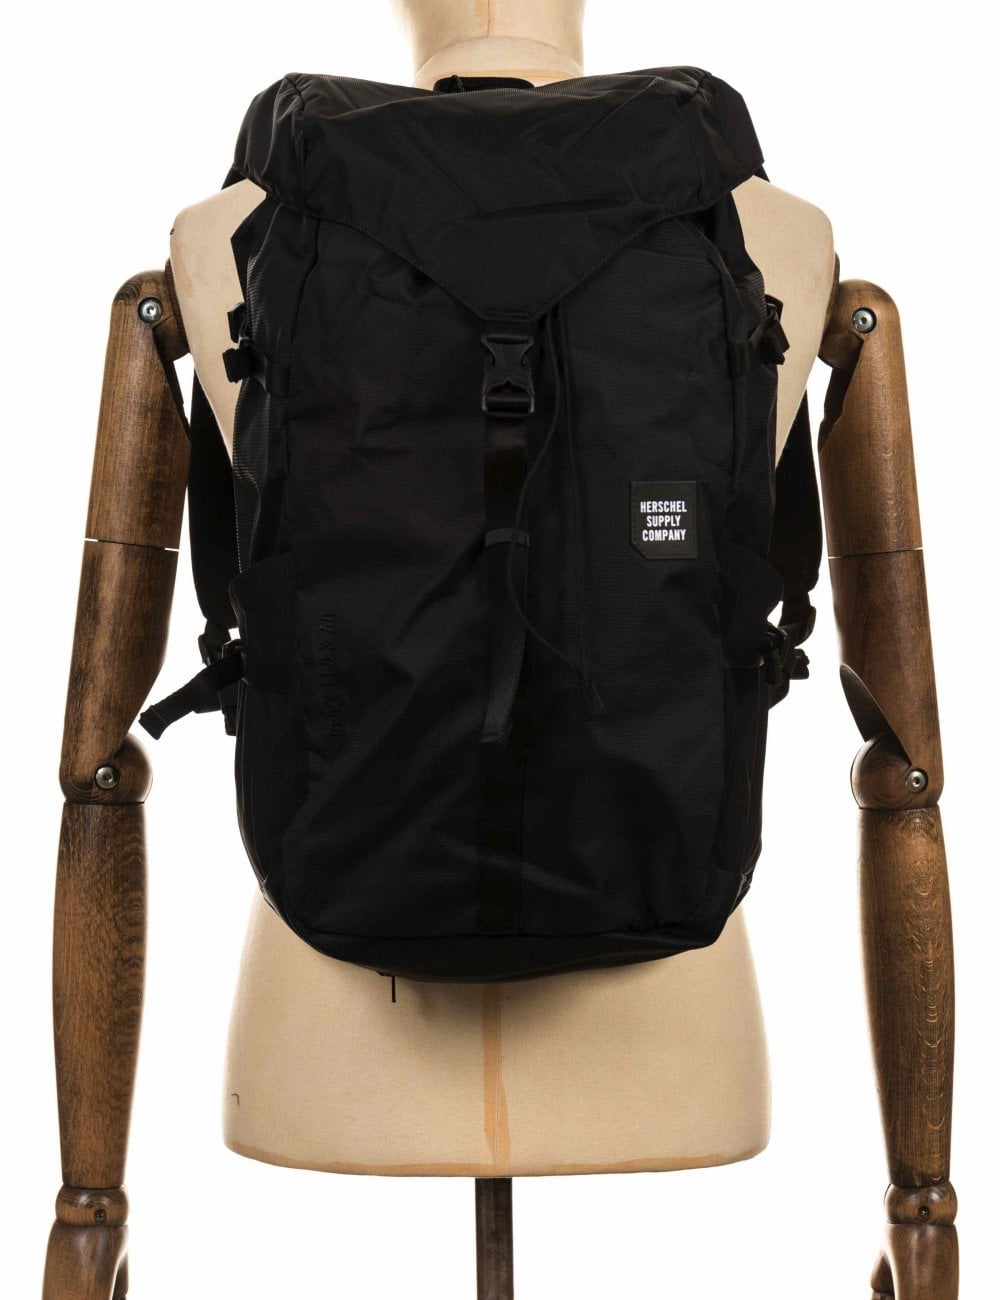 9f5d8360242 Herschel Supply Co Barlow Trail Backpack Large 27L - Black - Bag ...